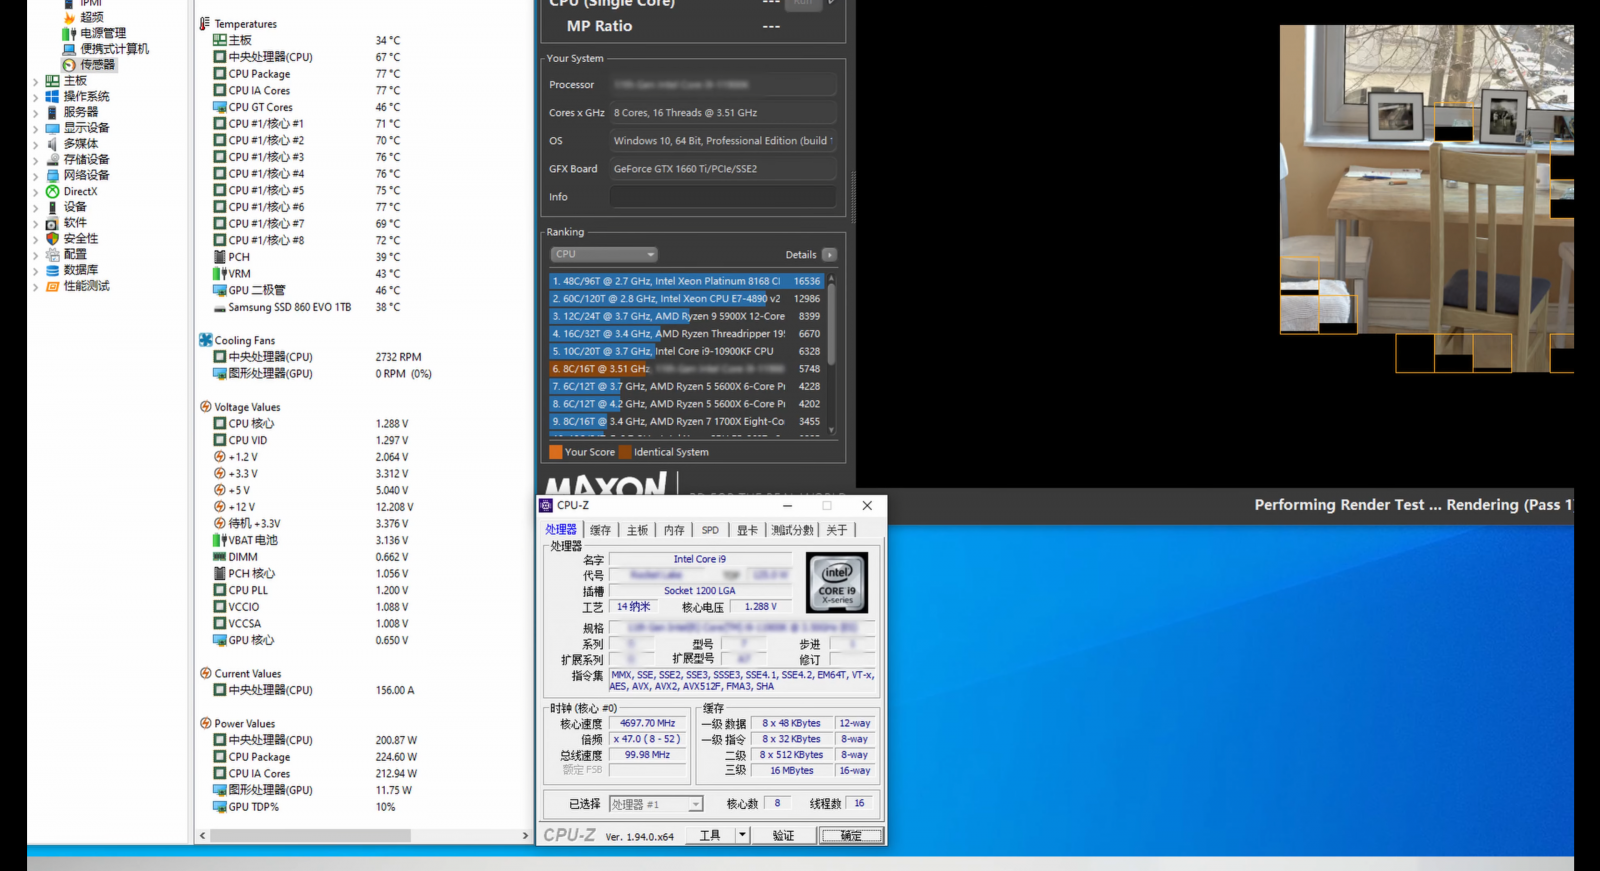 Intel-Core-i9-11900K-11th-Gen-Rocket-Lake-Desktop-CPU-Benchmark-Leak-_1.png